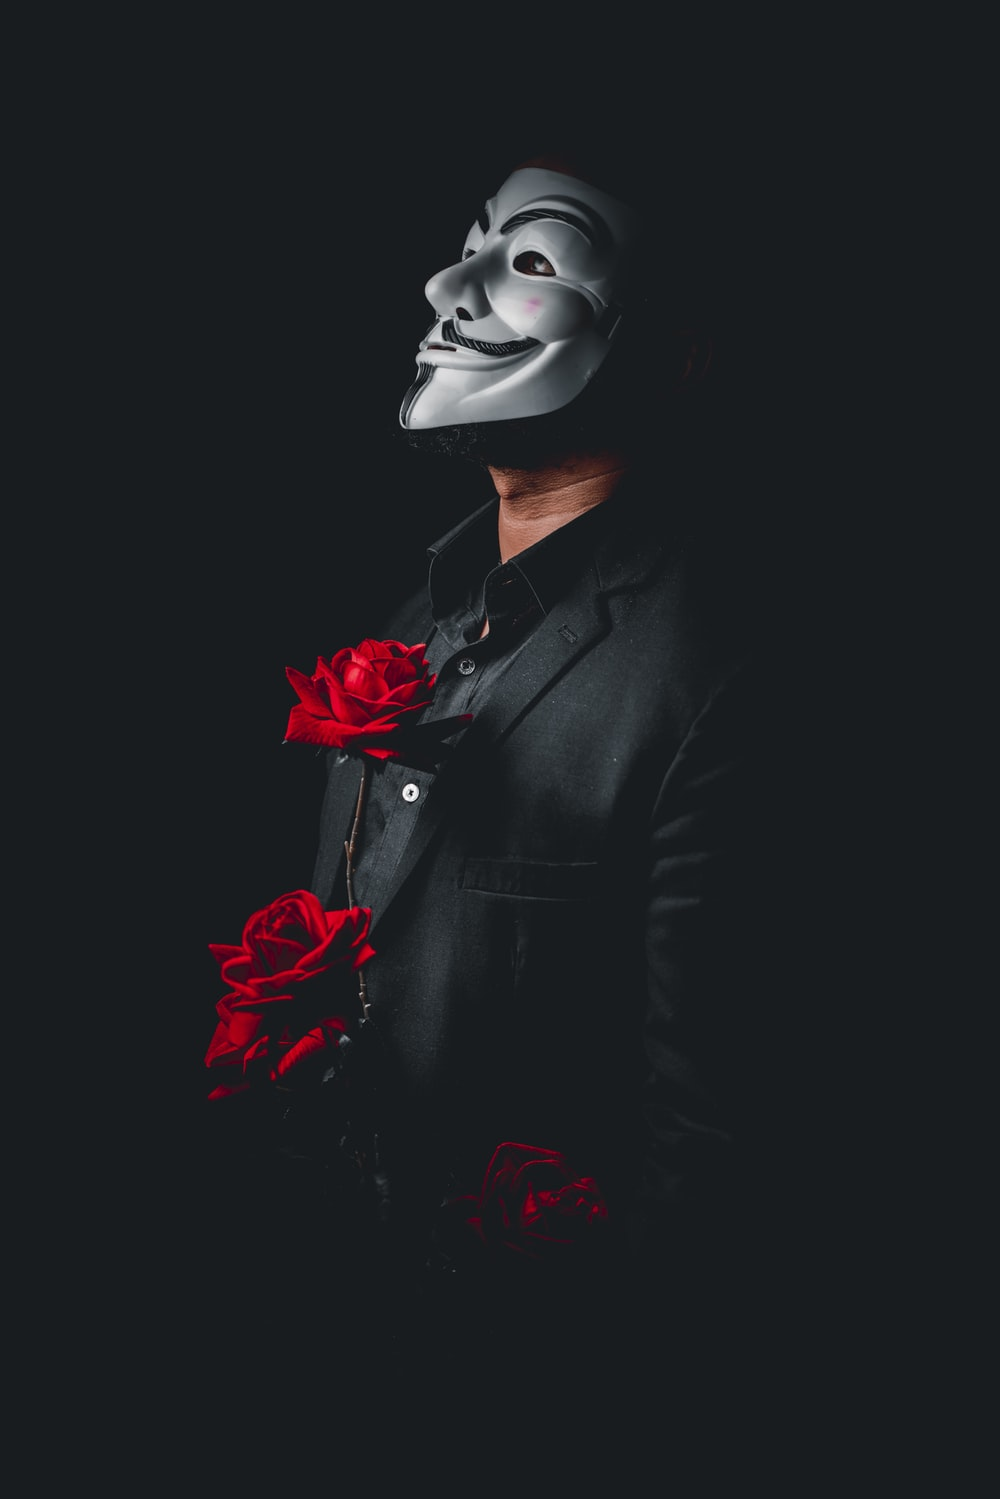 person in black suit with red rose on ear